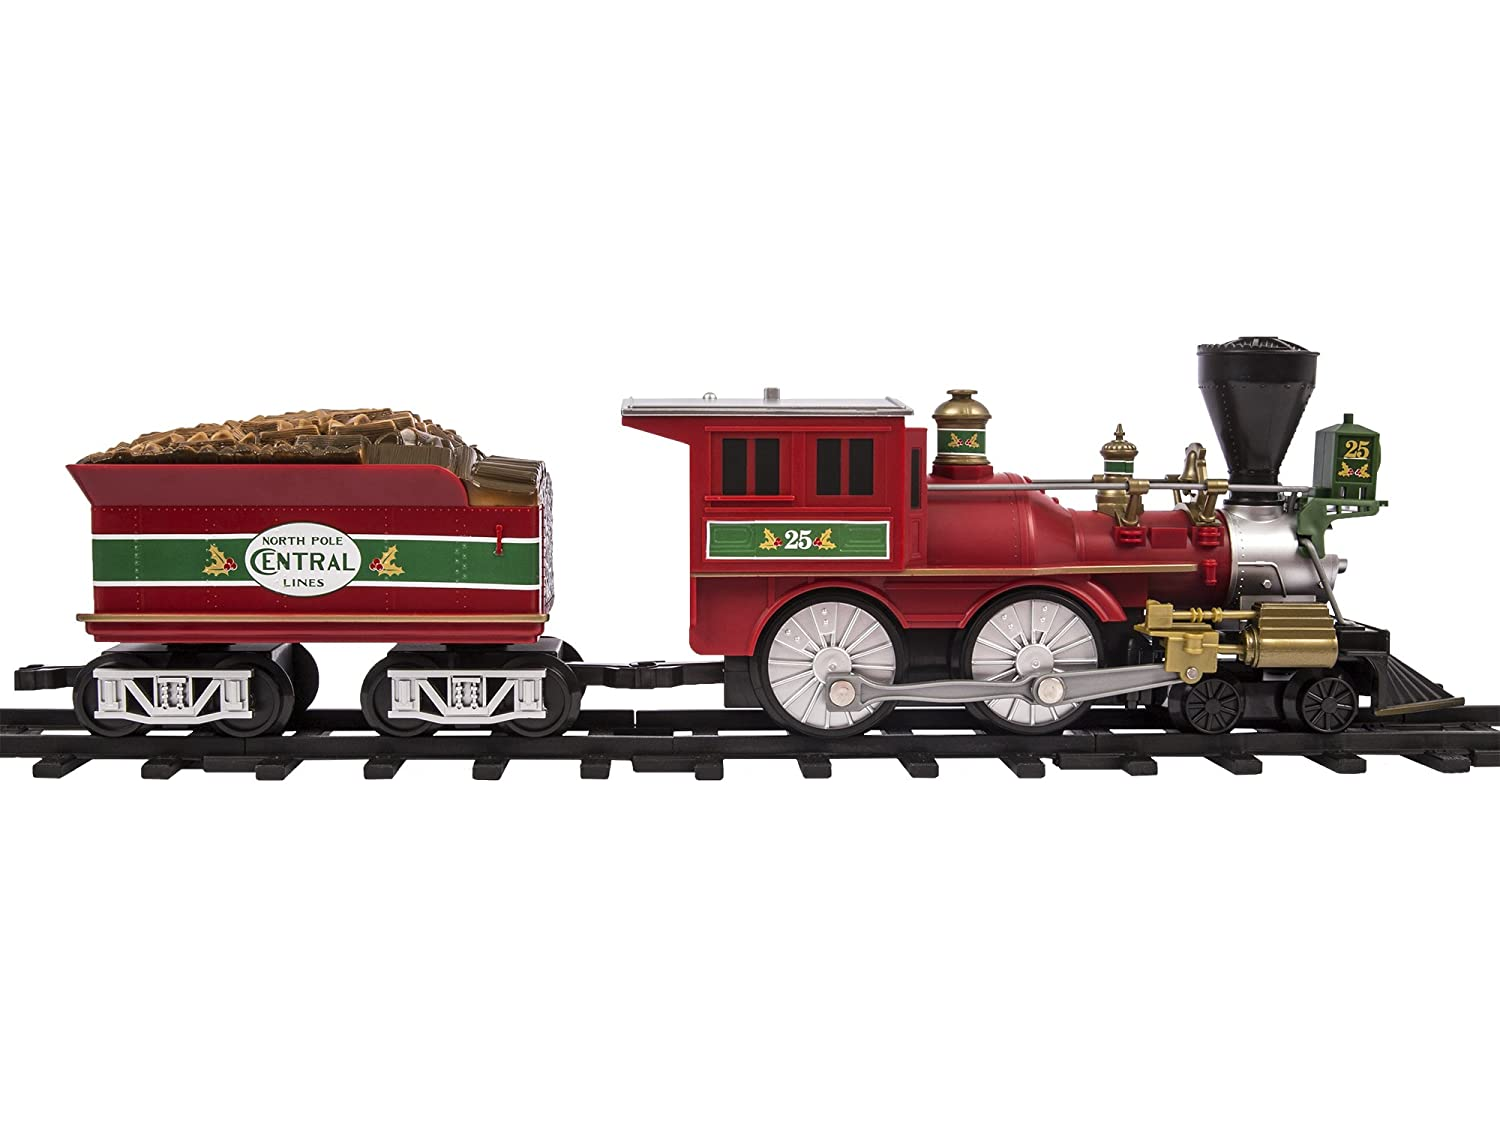 Amazon.com: Lionel North Pole Central Ready to Play Train Set: Toys ...